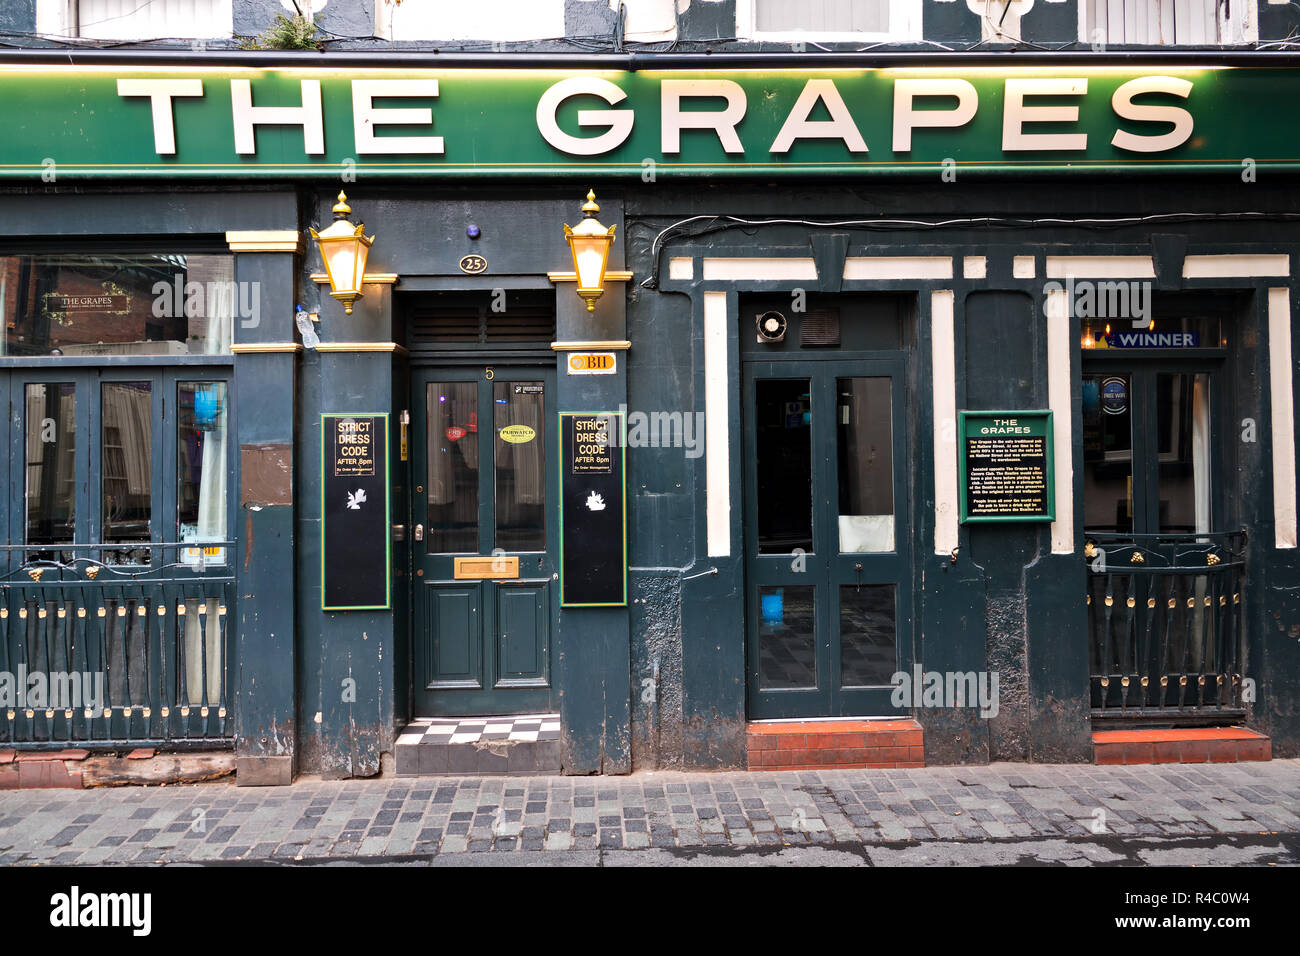 Legendary Liverpool pub The Grapes on Mathew St Liverpool UK. The Beatles often used to have a drink there before performing at The Cavern opposite. - Stock Image